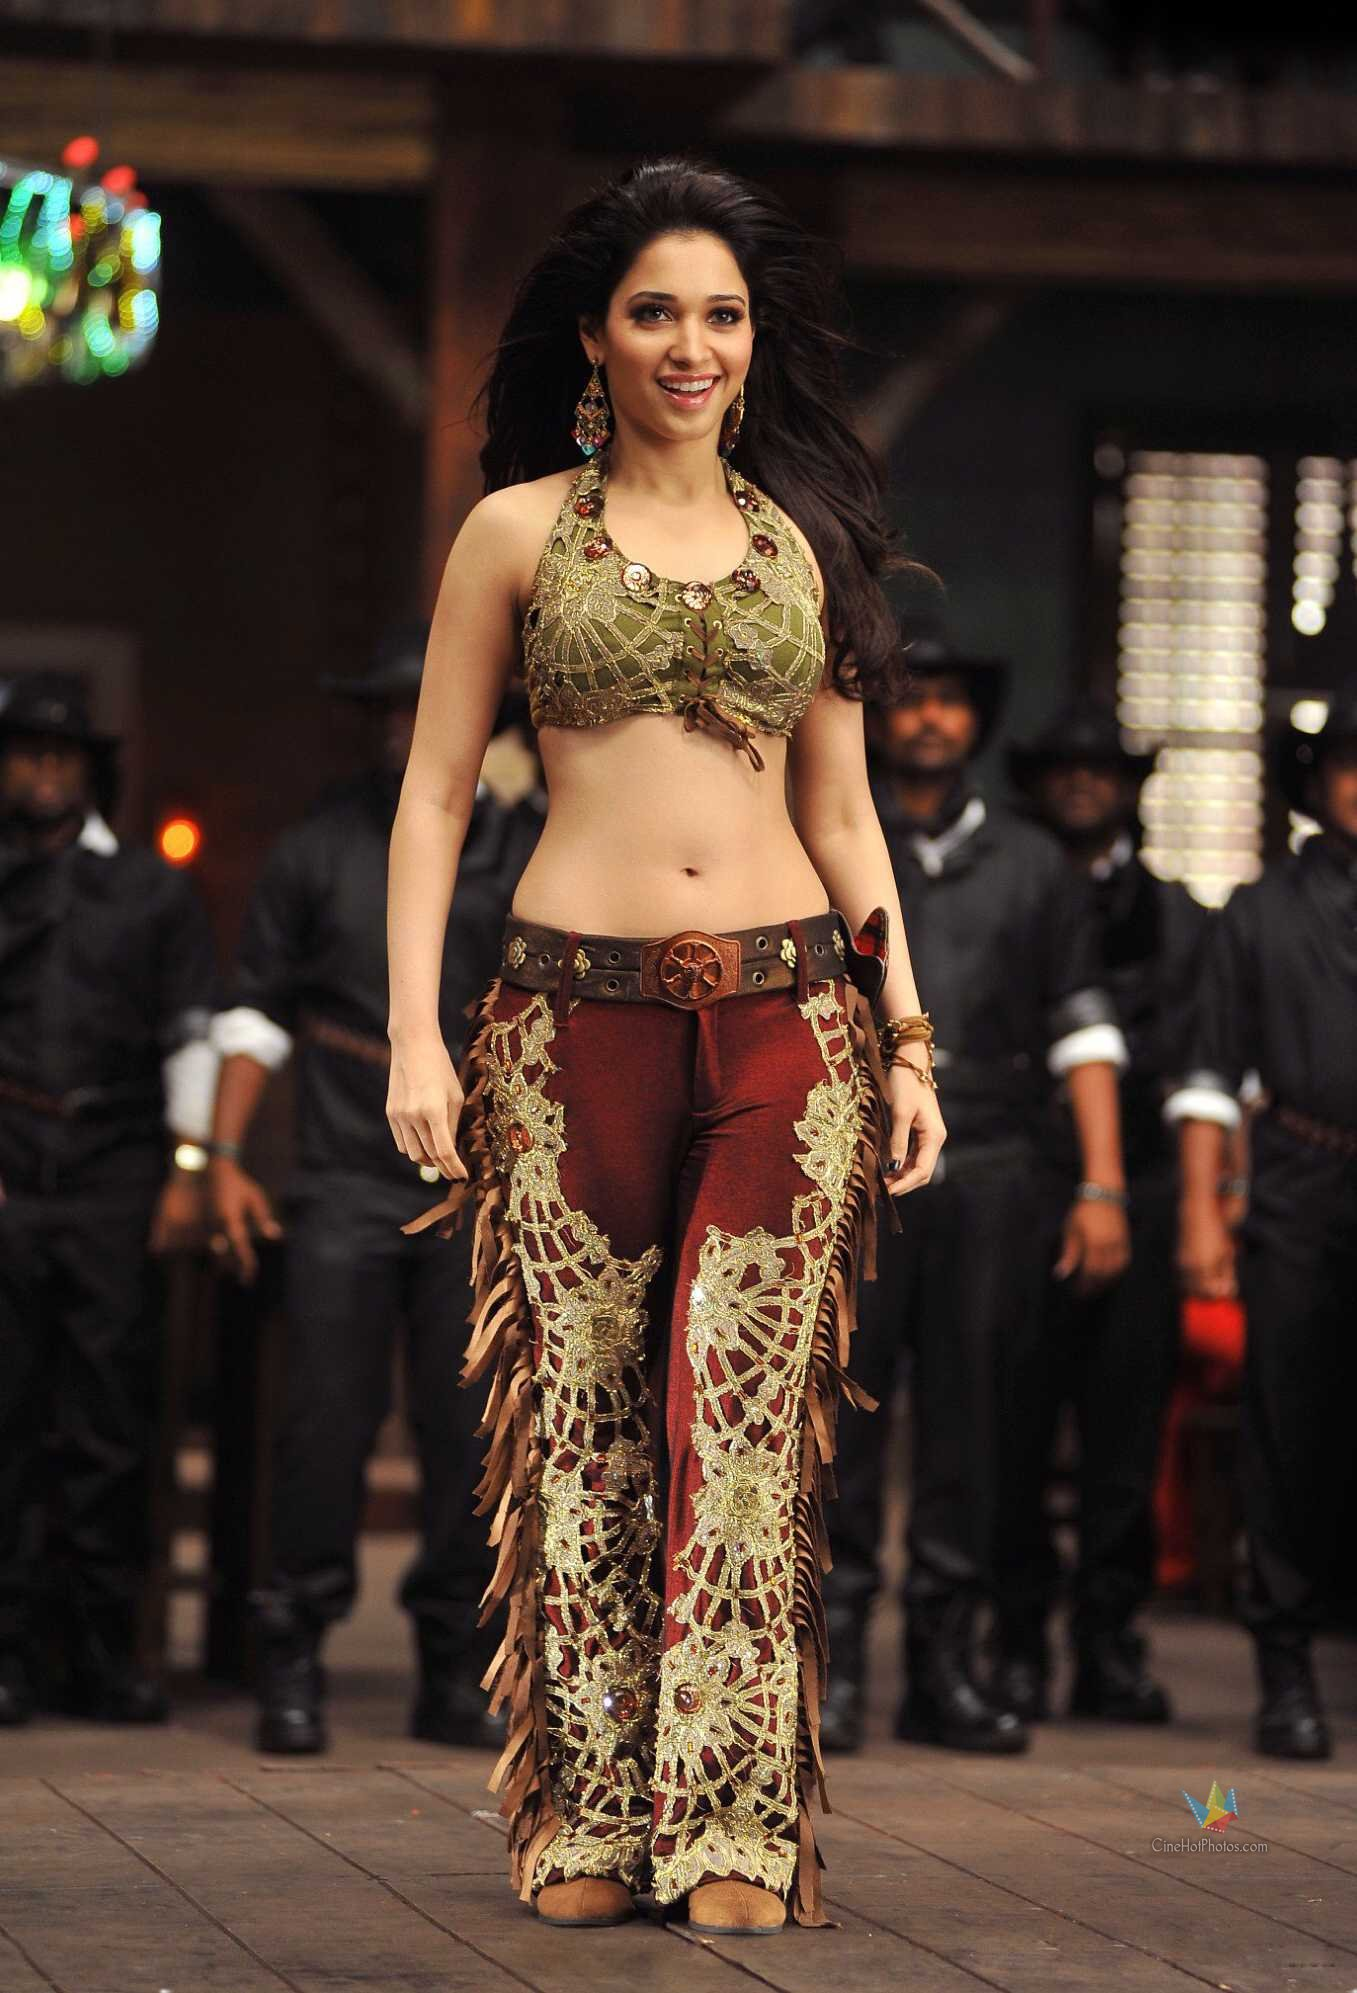 tamanna bhatia images tamannaah bhatia hd wallpaper and background